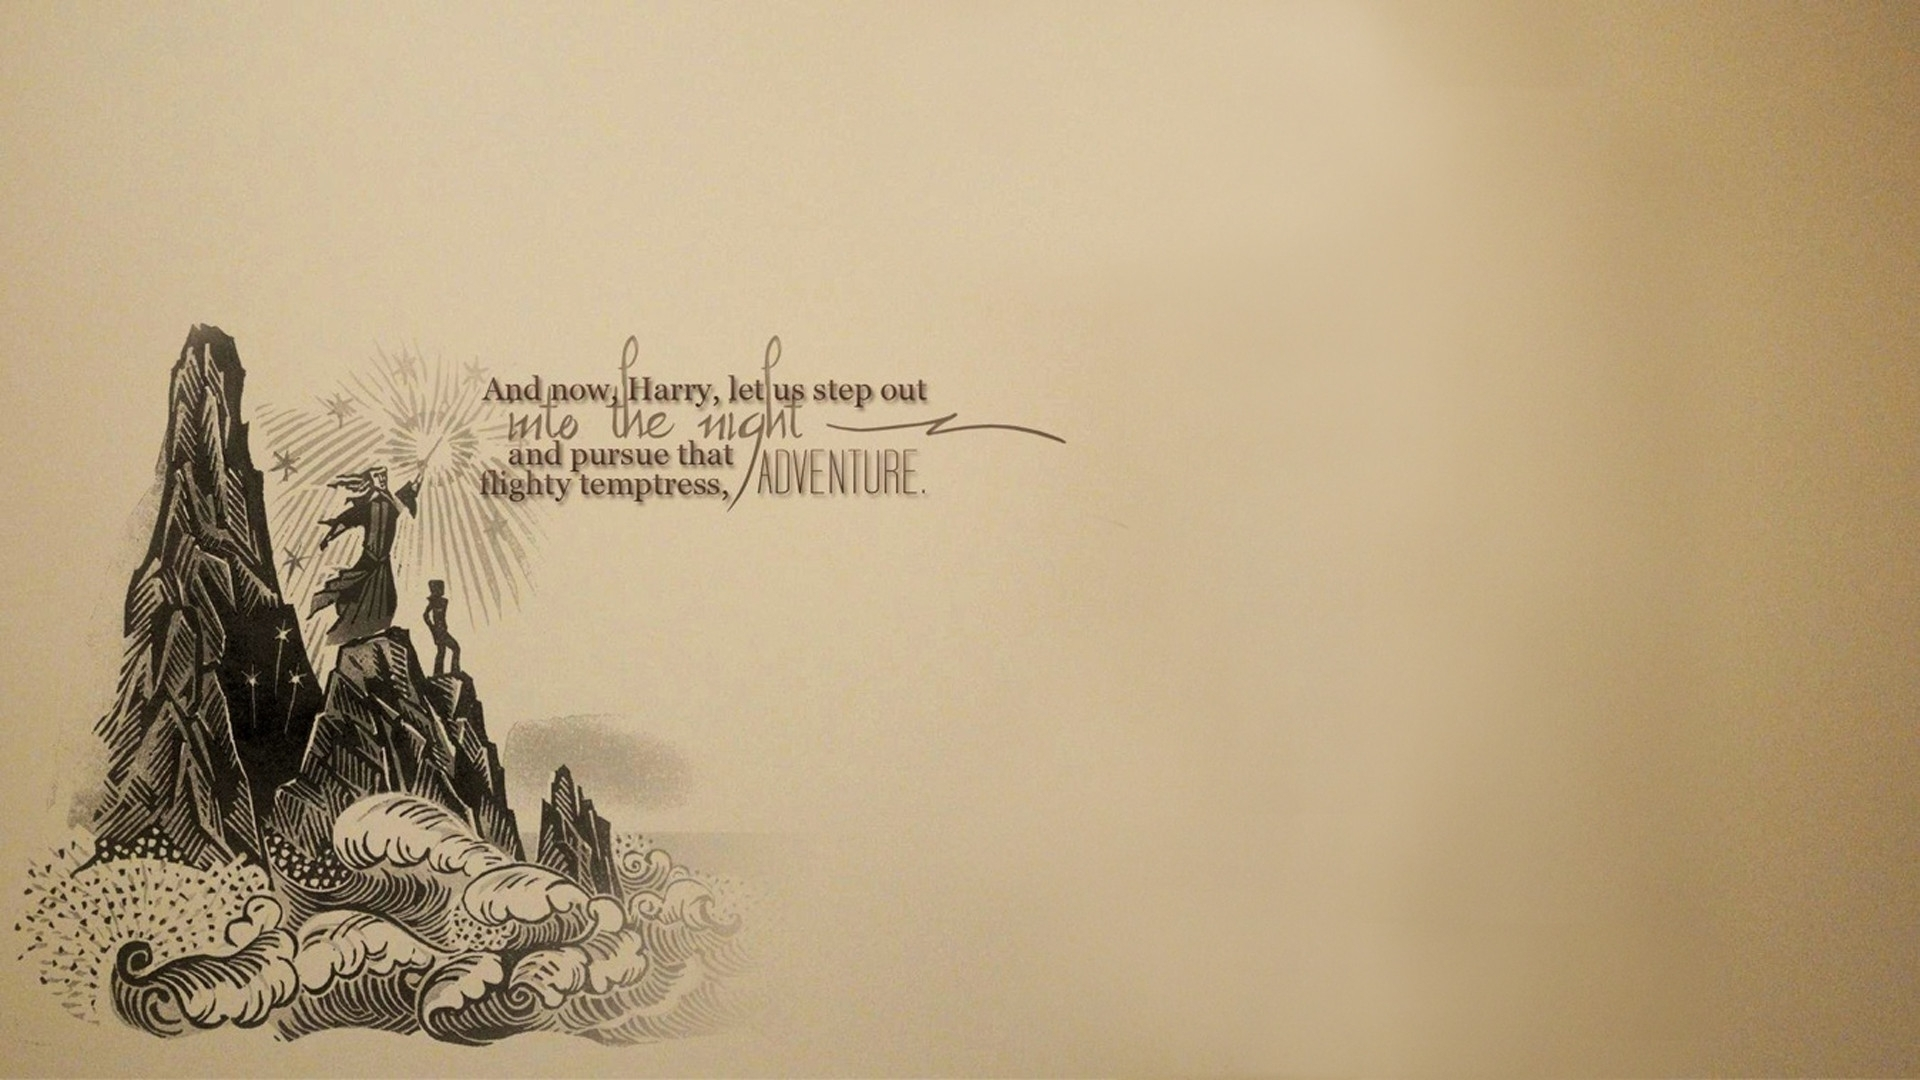 wallpaper harry potter quote afari on background high quality of